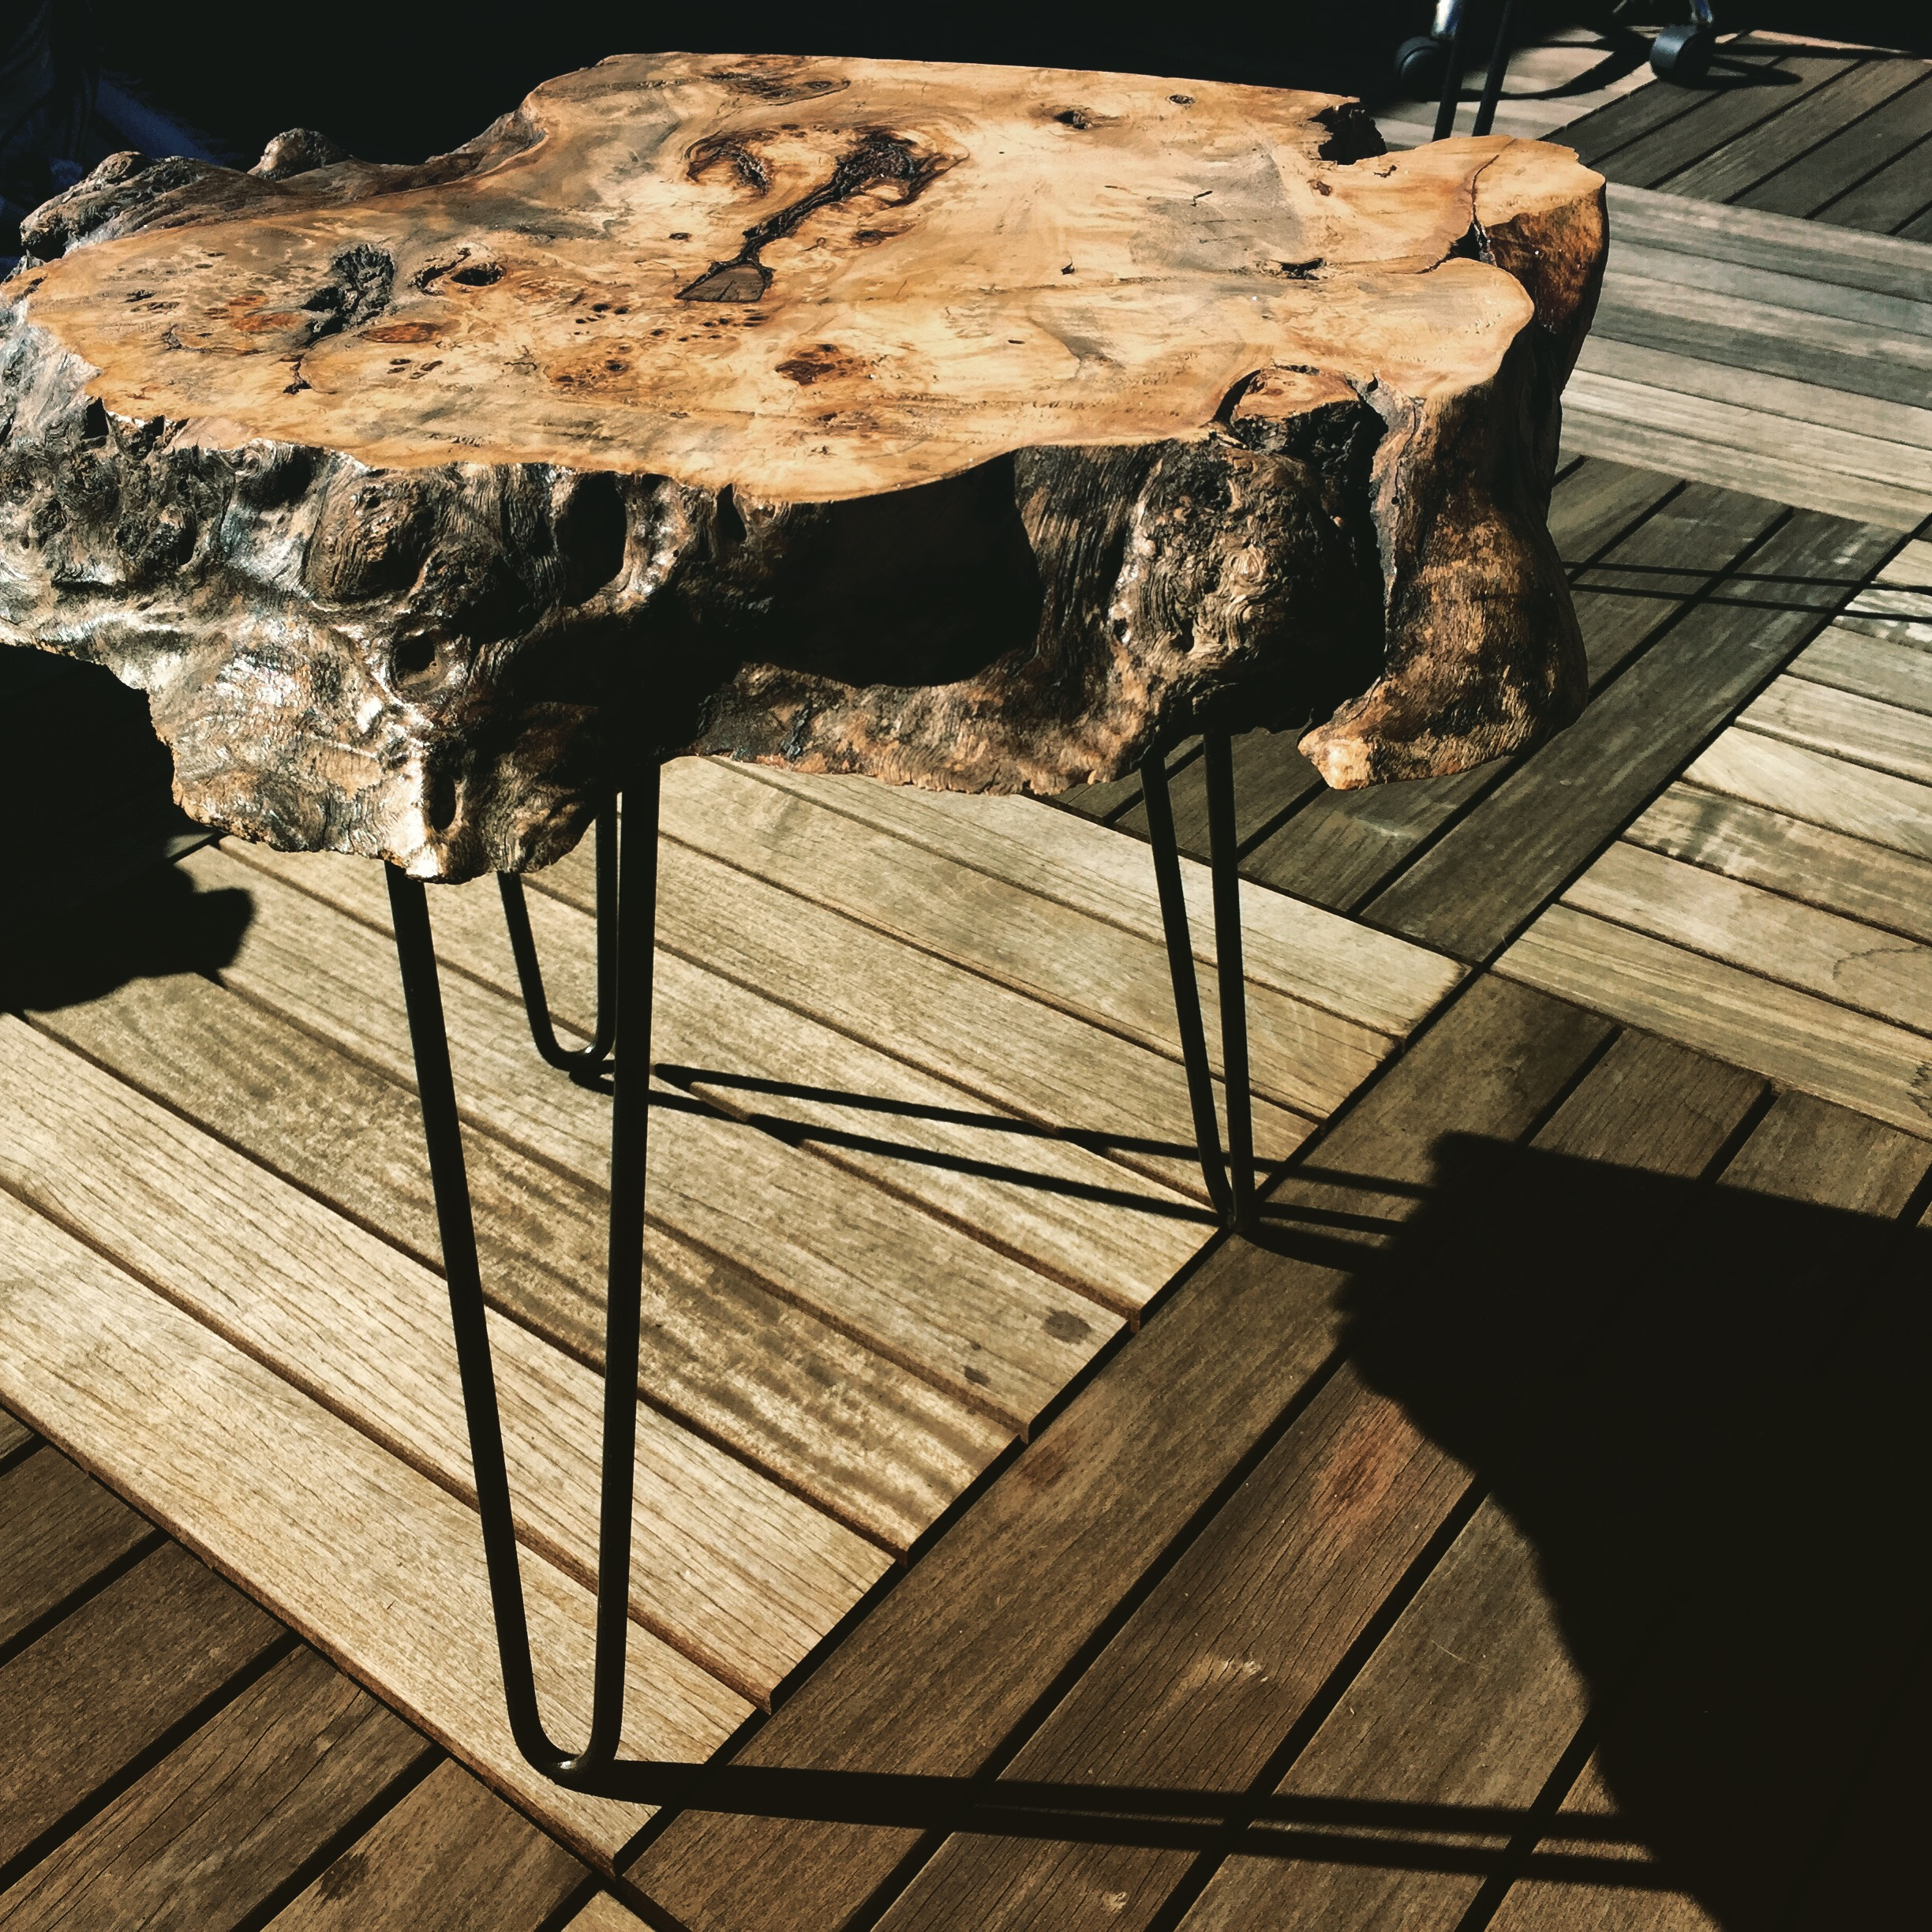 bedroom gun safe the perfect real burl wood end table ideas raw edge maple sold short bedside industrial dining set high little tables for living room double recliner sofa ikea